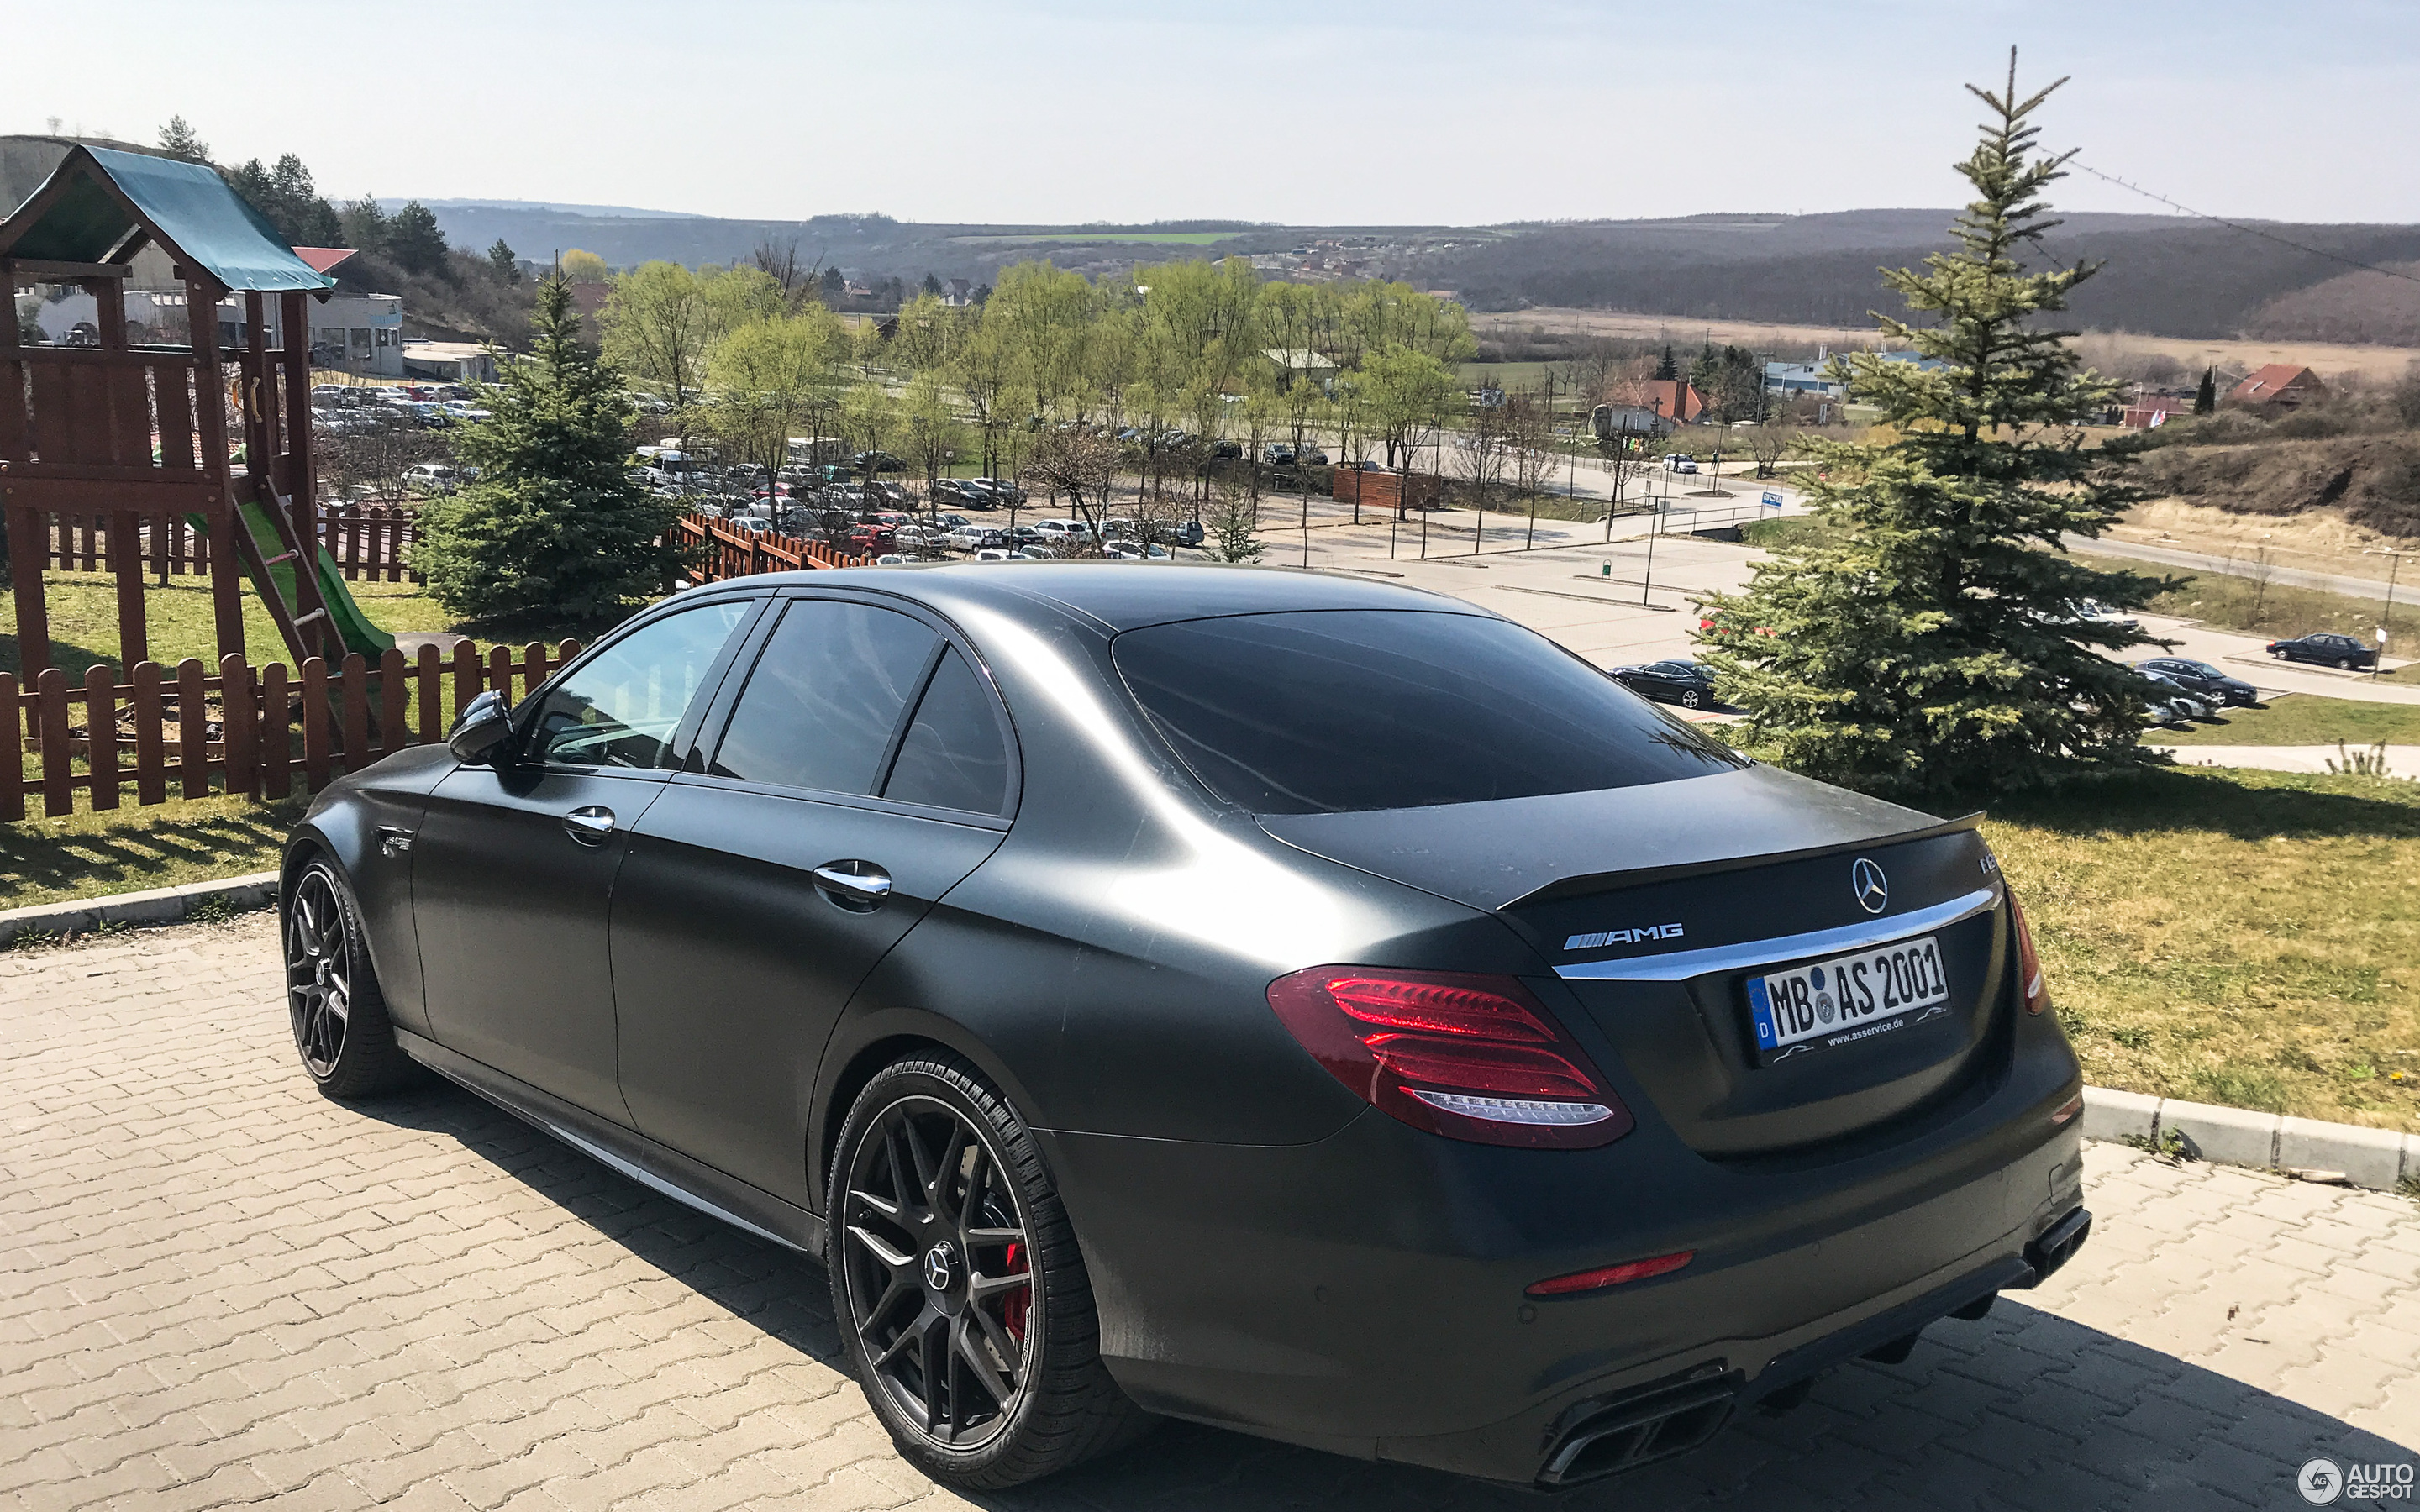 Mercedes-AMG E 63 S W213 - 7 April 2019 - Autogespot